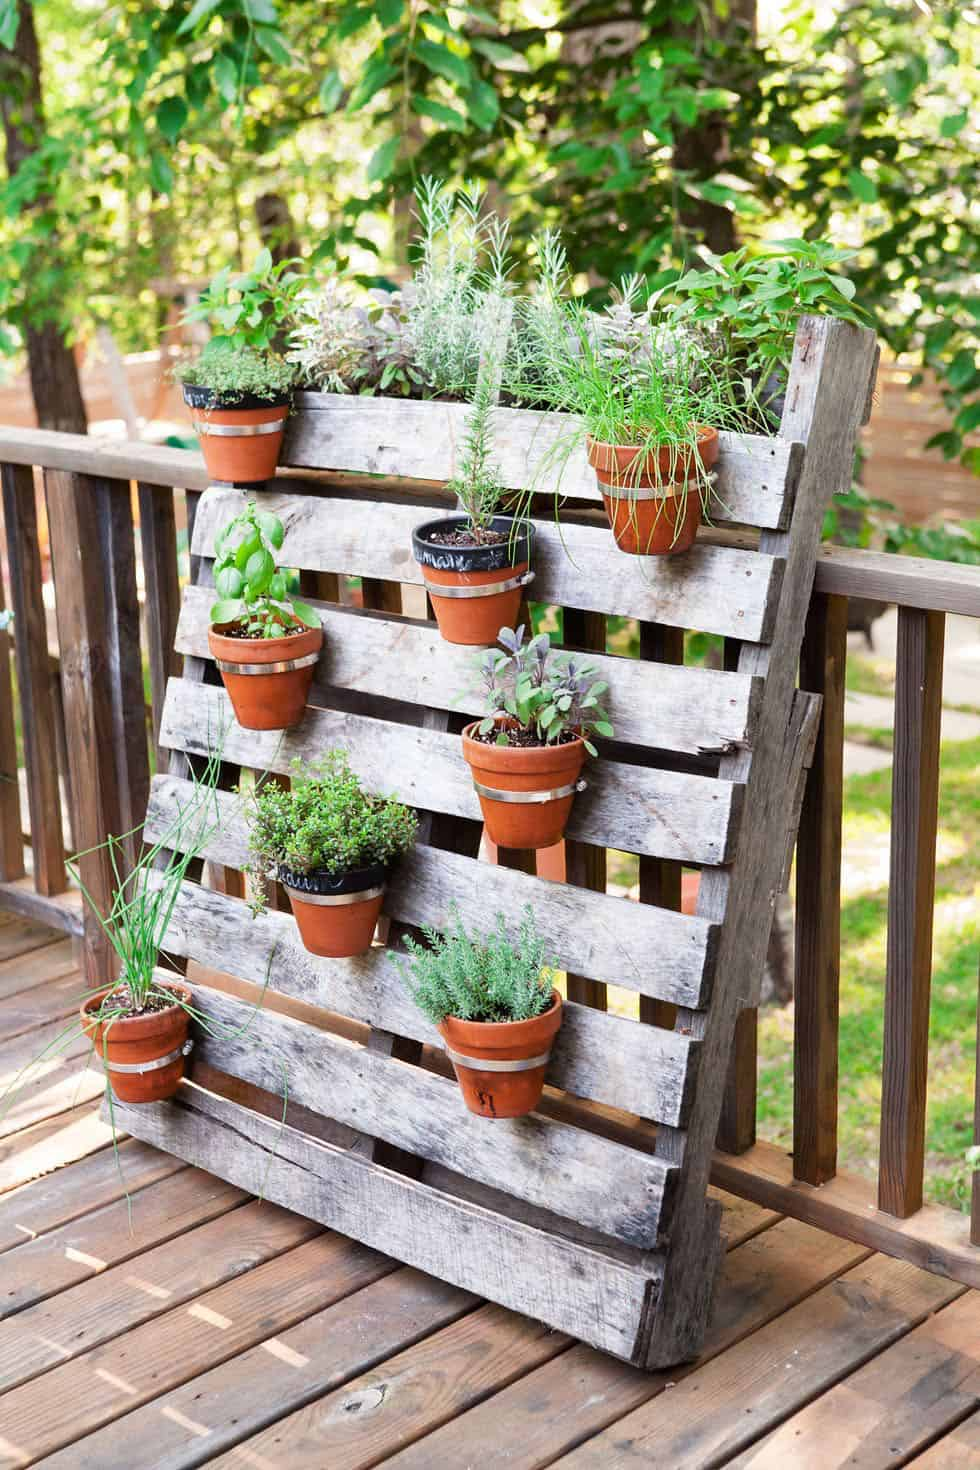 Recycled Wood Pallet Garden Ideas To Diy